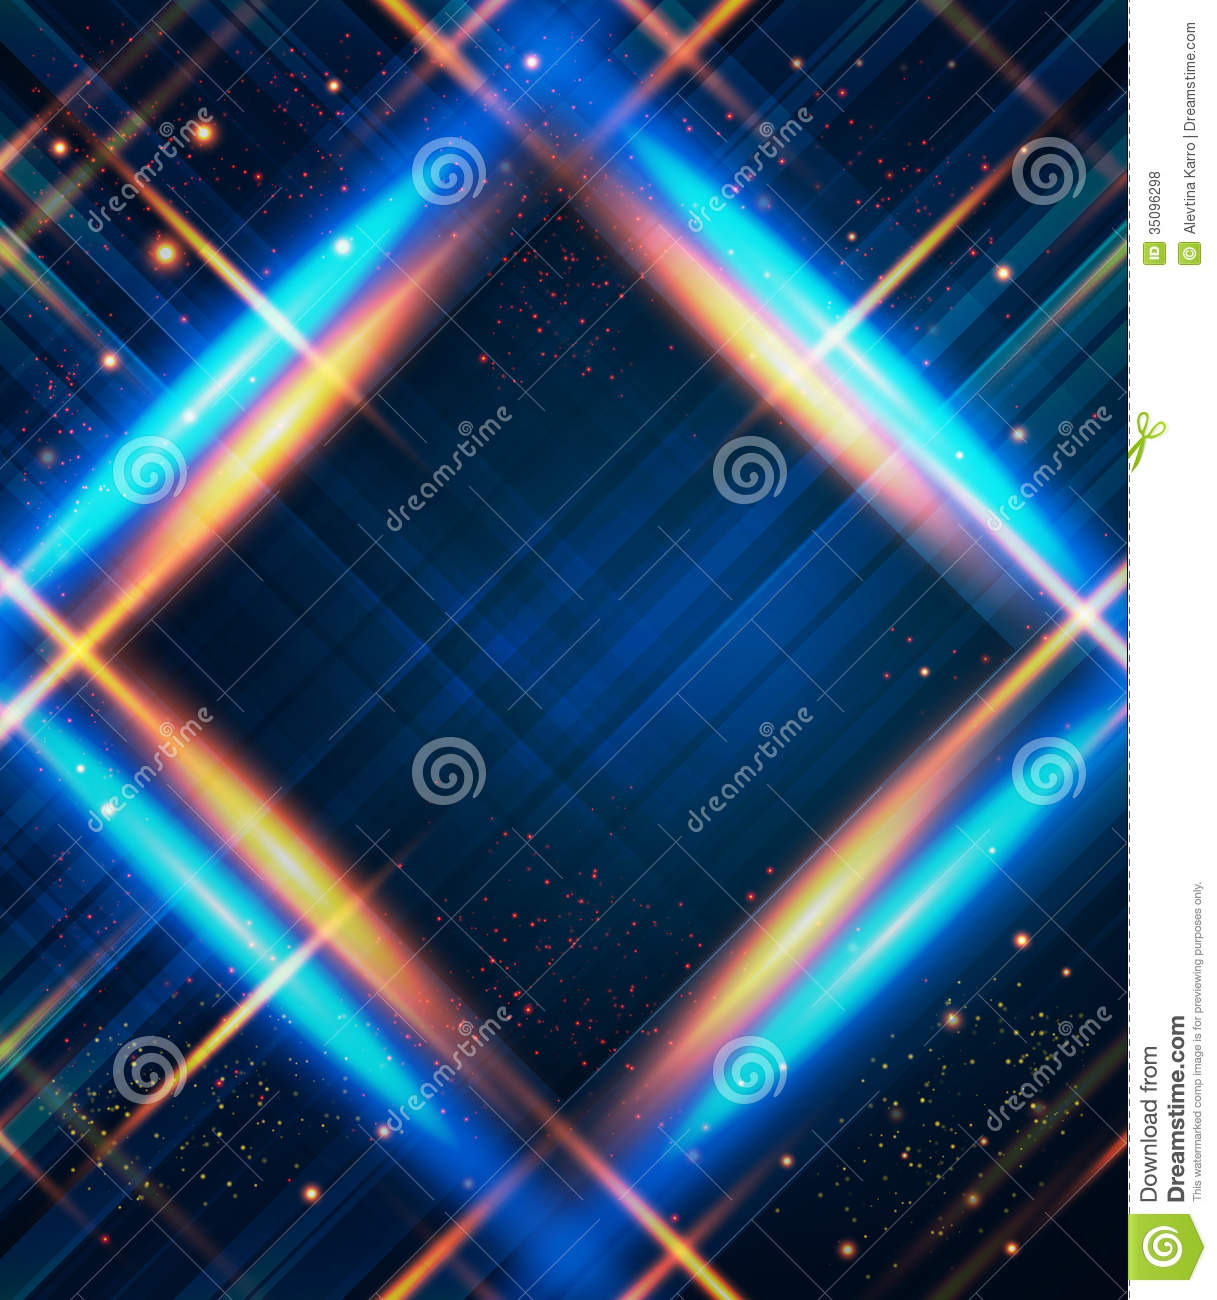 Background image effects - Abstract Background Effects